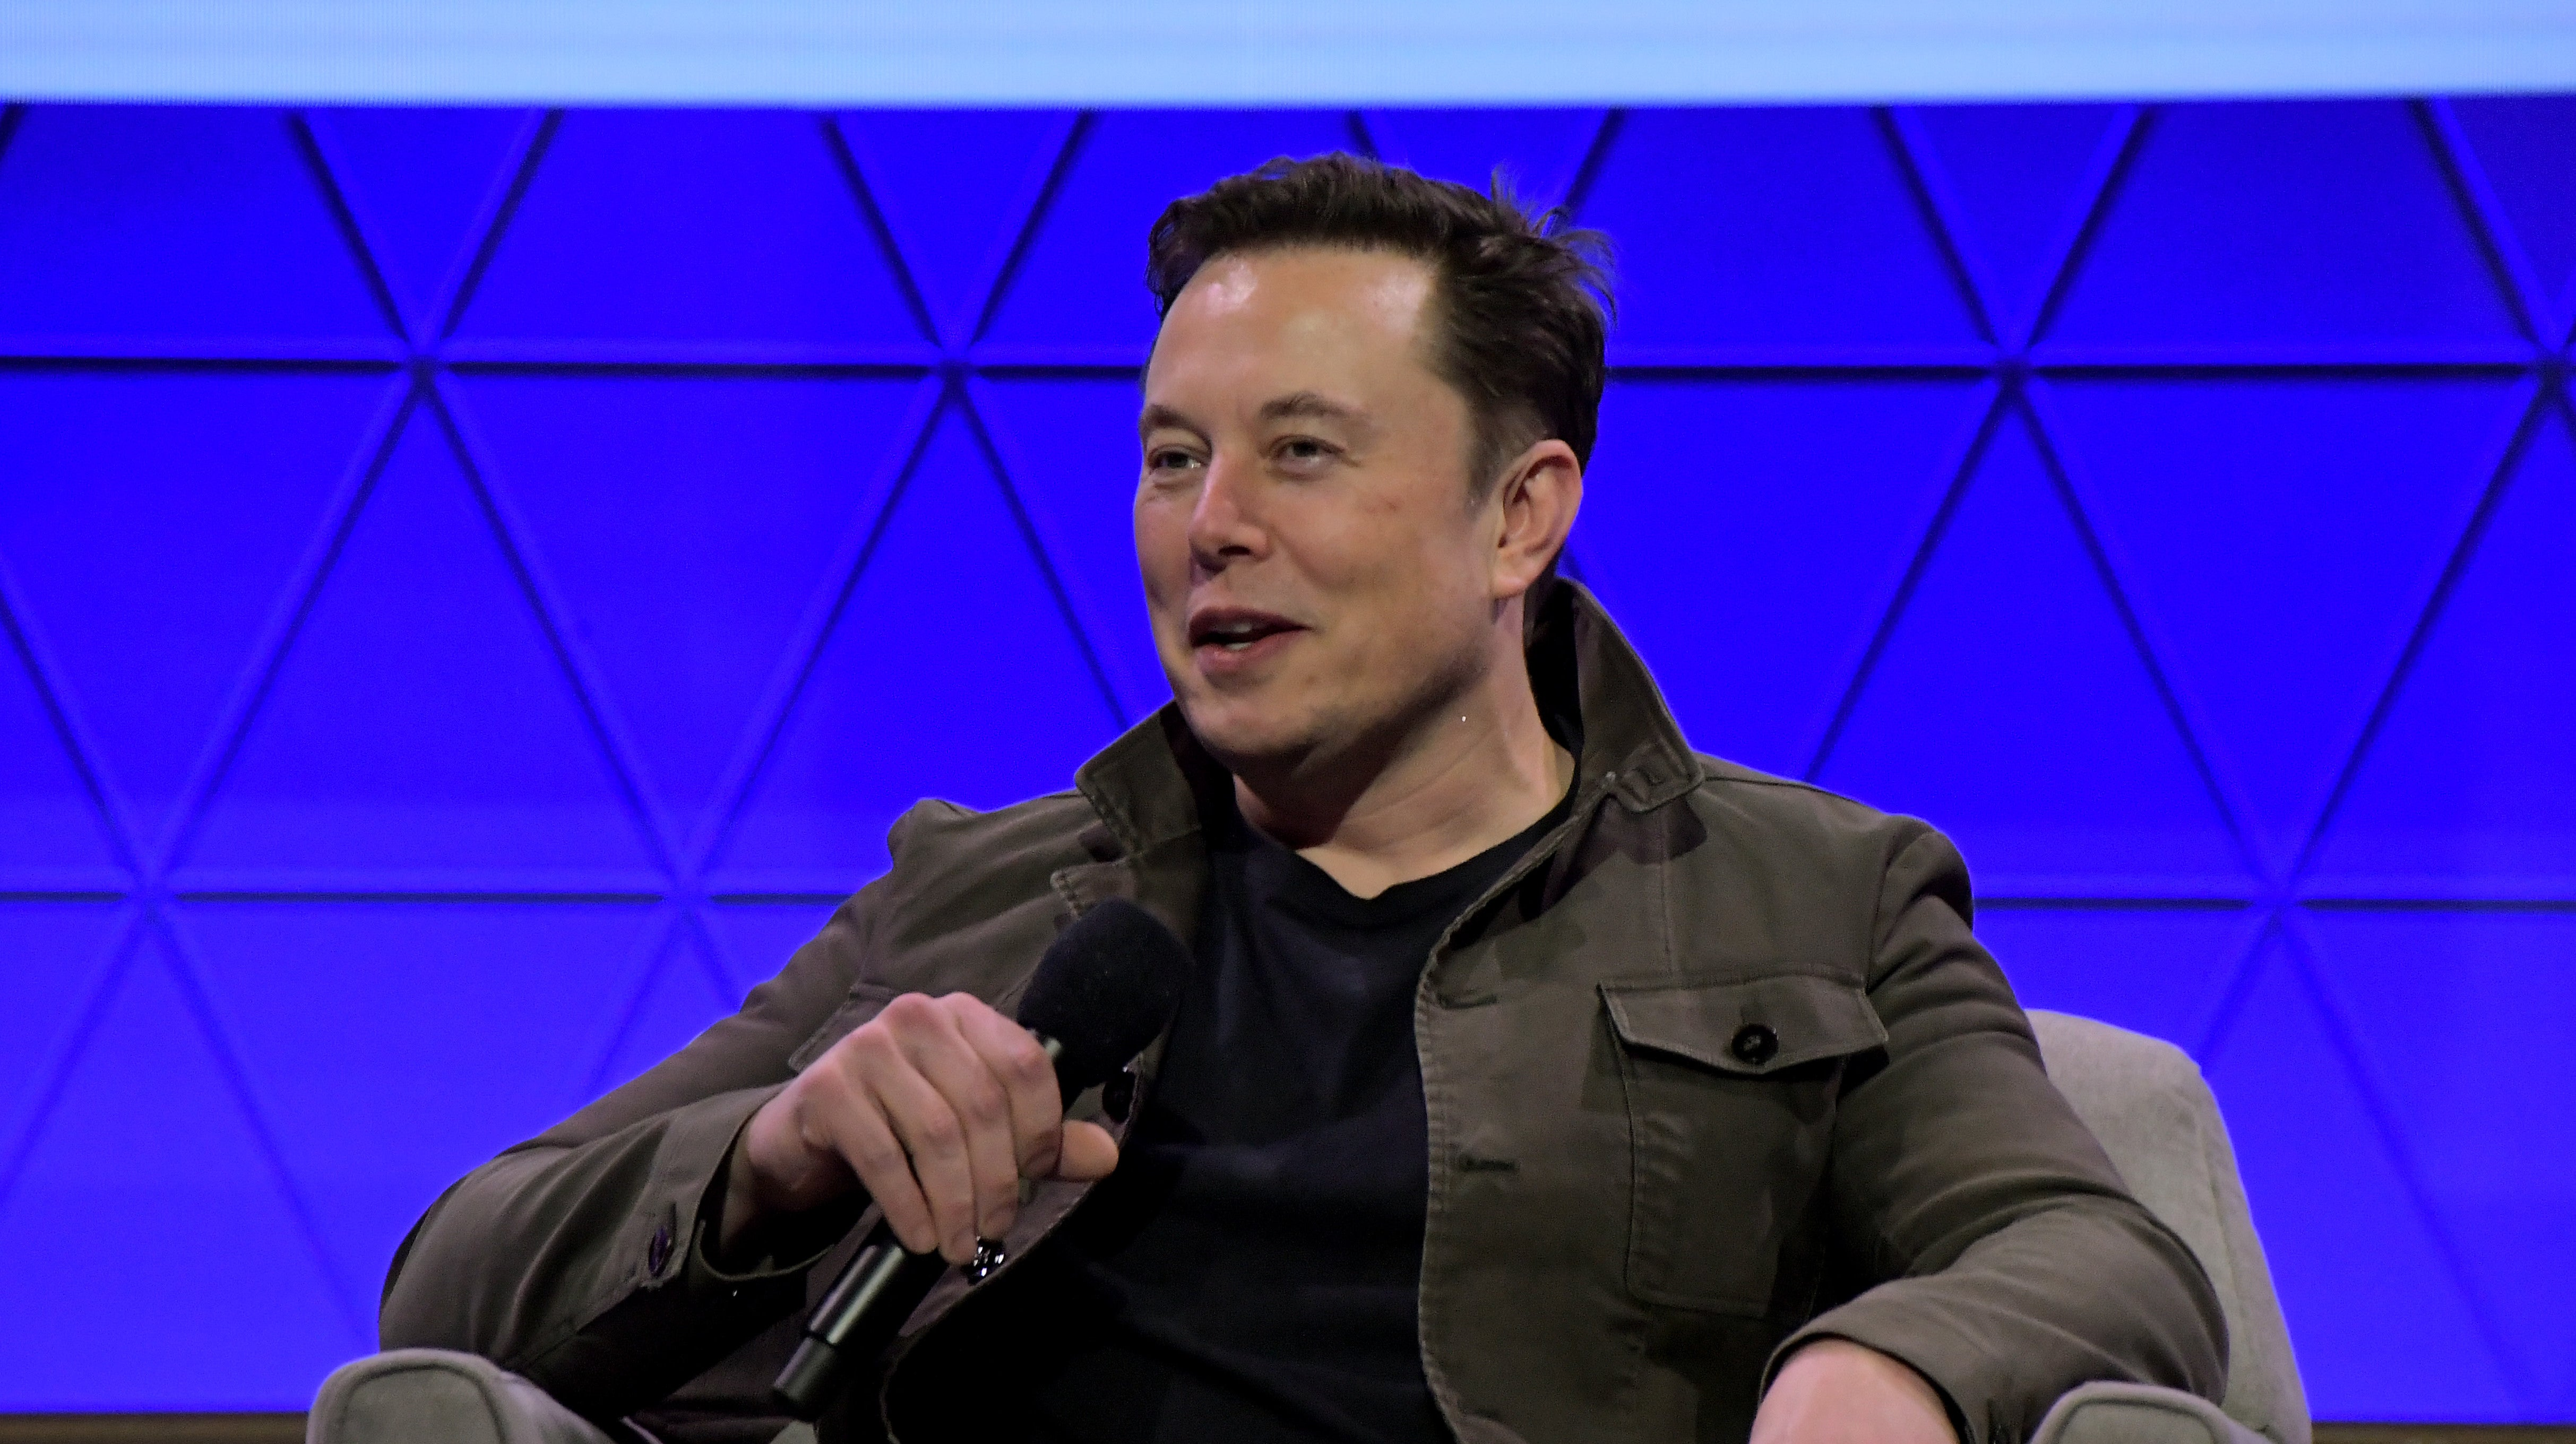 We Might Finally Find Out What Elon Musk's Neuralink Has Been Up To